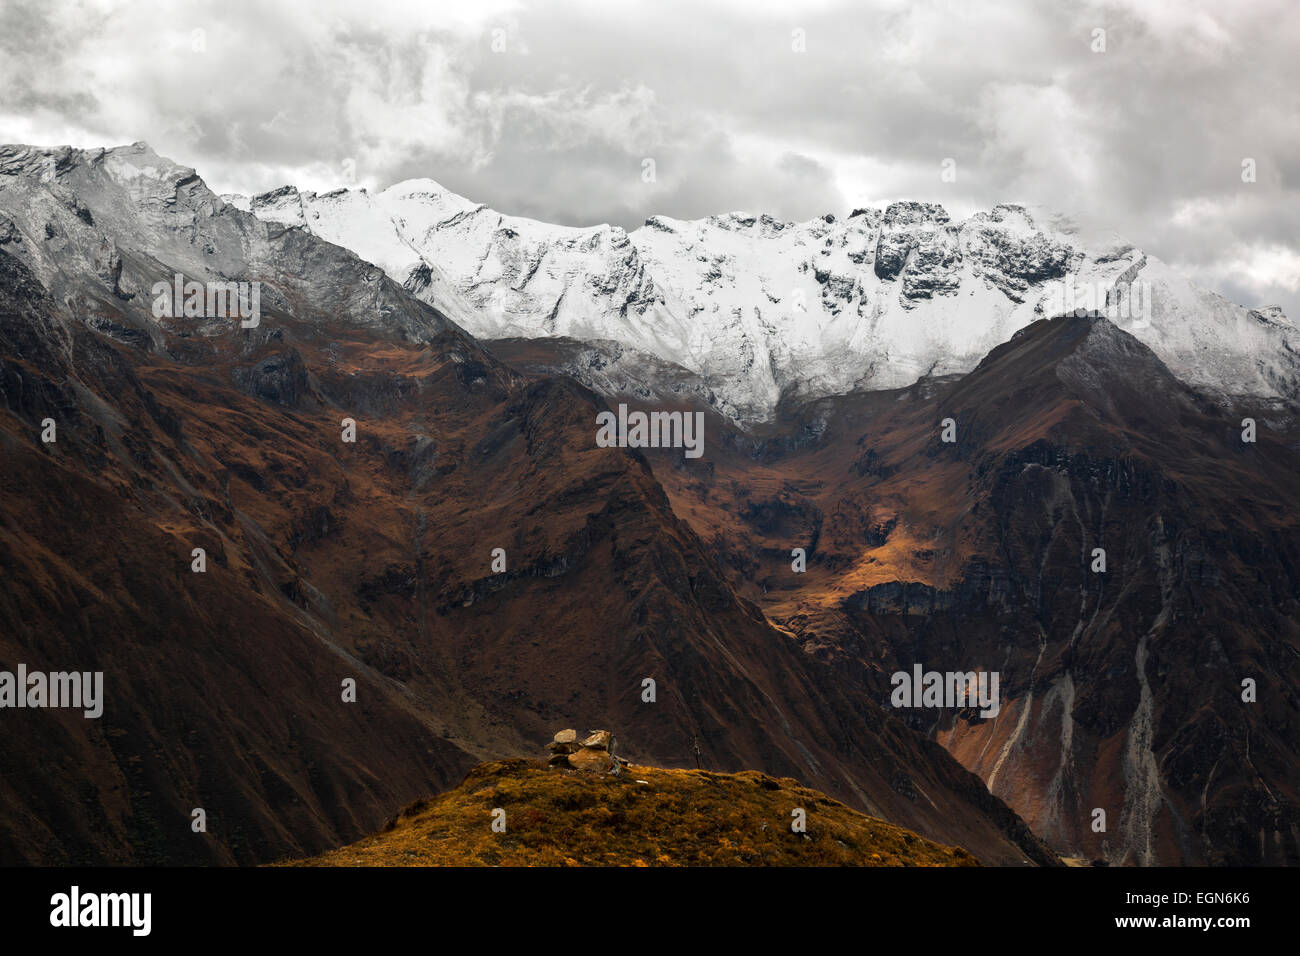 BHUTAN - Covered with a dusting of snow, these hills rise high above Paro Chhu Valley looking like true peaks of - Stock Image